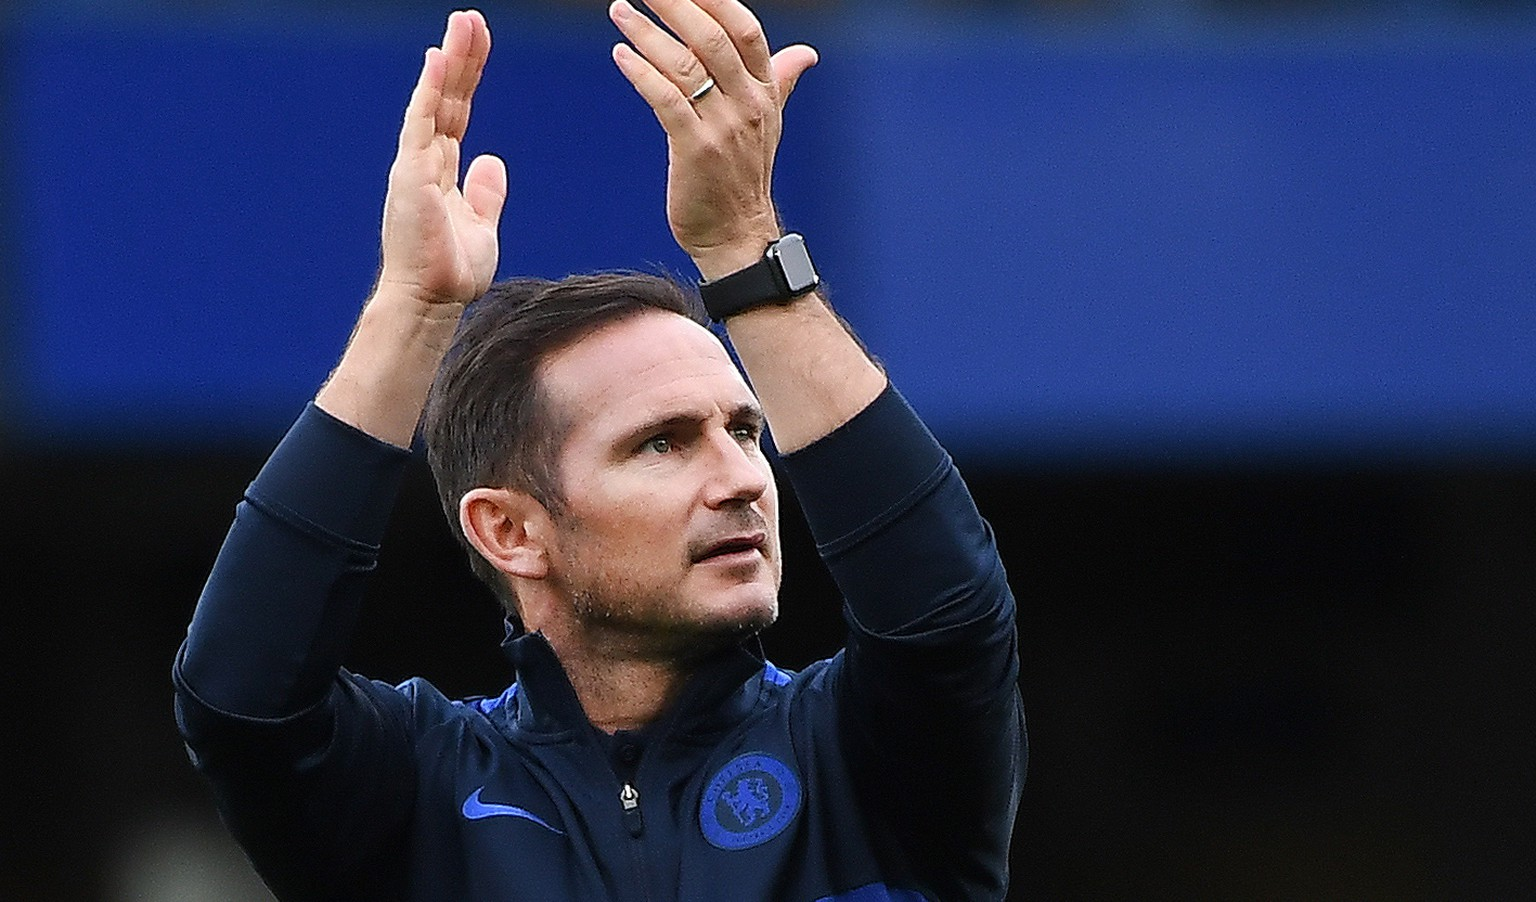 epa08963845 (FILE) - epa07877142 Chelsea manager Frank Lampard acknowledges the Chelsea fans following his teams 2-0 win over Brighton in an English Premier League soccer match at Stamford Bridge in London, Britain, 28 September 2019 (reissued on 25 January 2021). On 25 January 2021 Chelsea announced the decision to sack Frank Lampard, who was appointed as manager on 04 July 2019.  EPA/ANDY RAIN EDITORIAL USE ONLY. No use with unauthorized audio, video, data, fixture lists, club/league logos or 'live' services. Online in-match use limited to 120 images, no video emulation. No use in betting, games or single club/league/player publications *** Local Caption *** 55503497